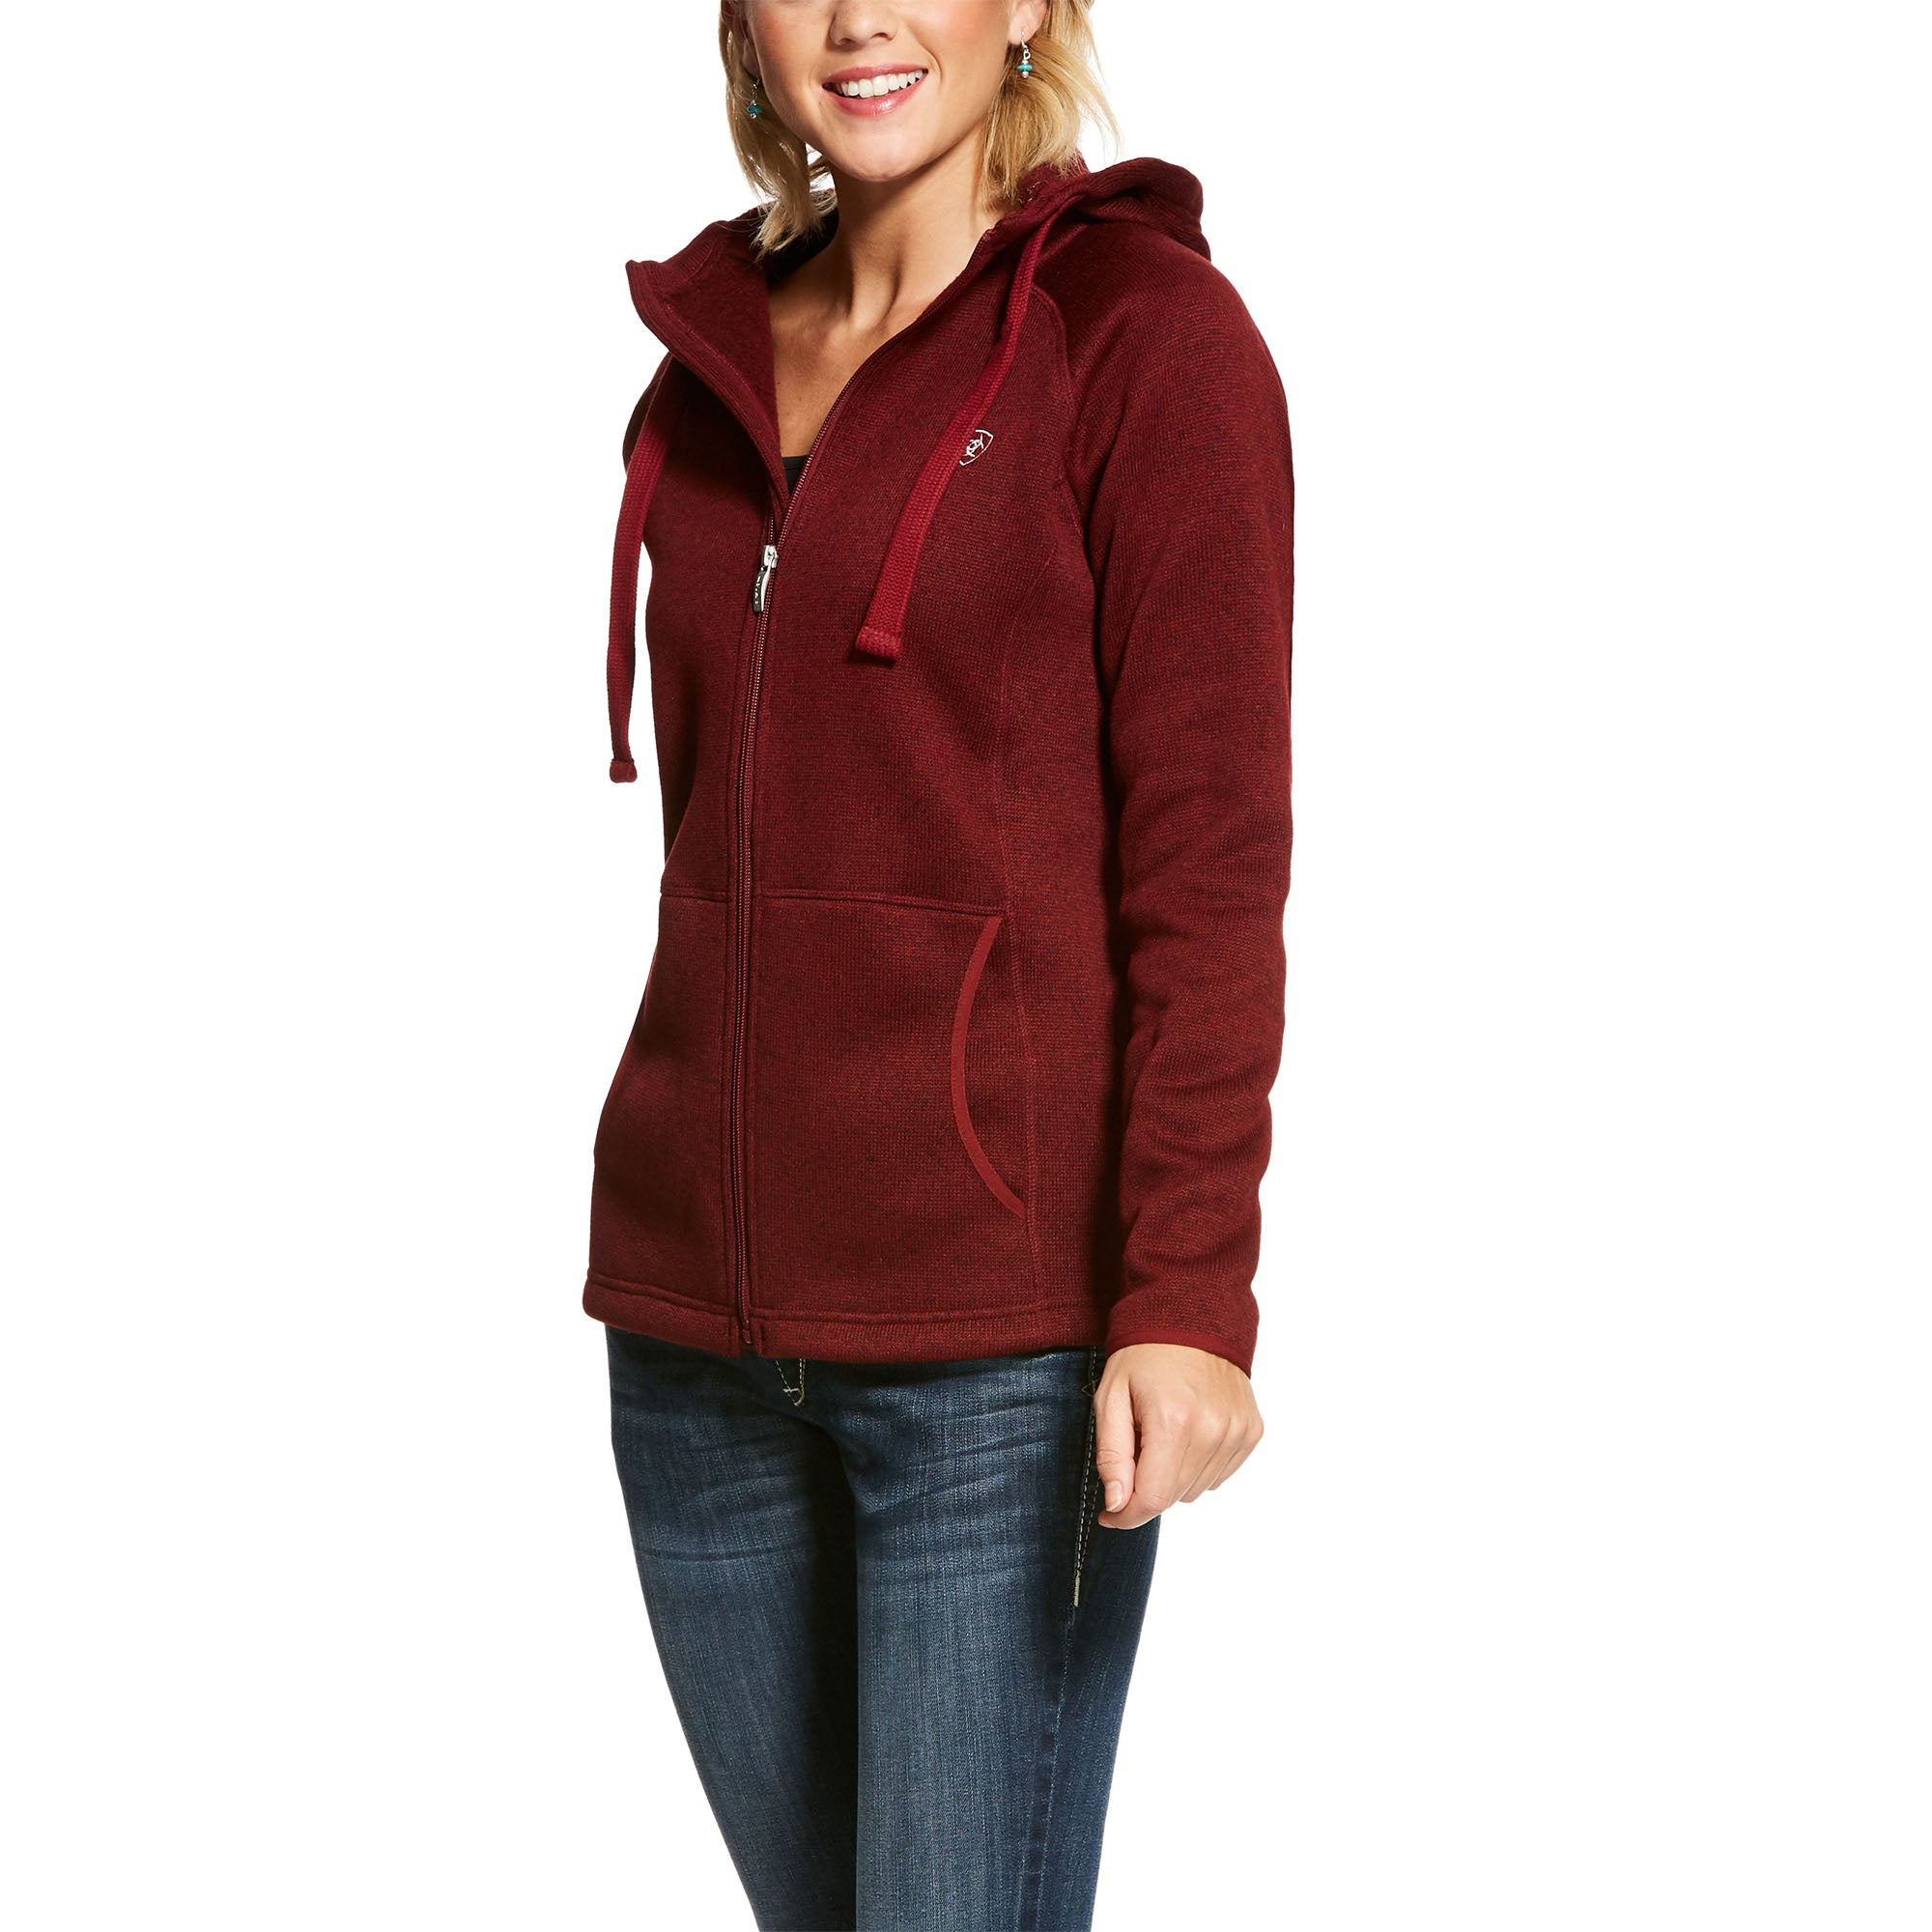 Women's Ariat Granby Full Zip Hoodie #10028063